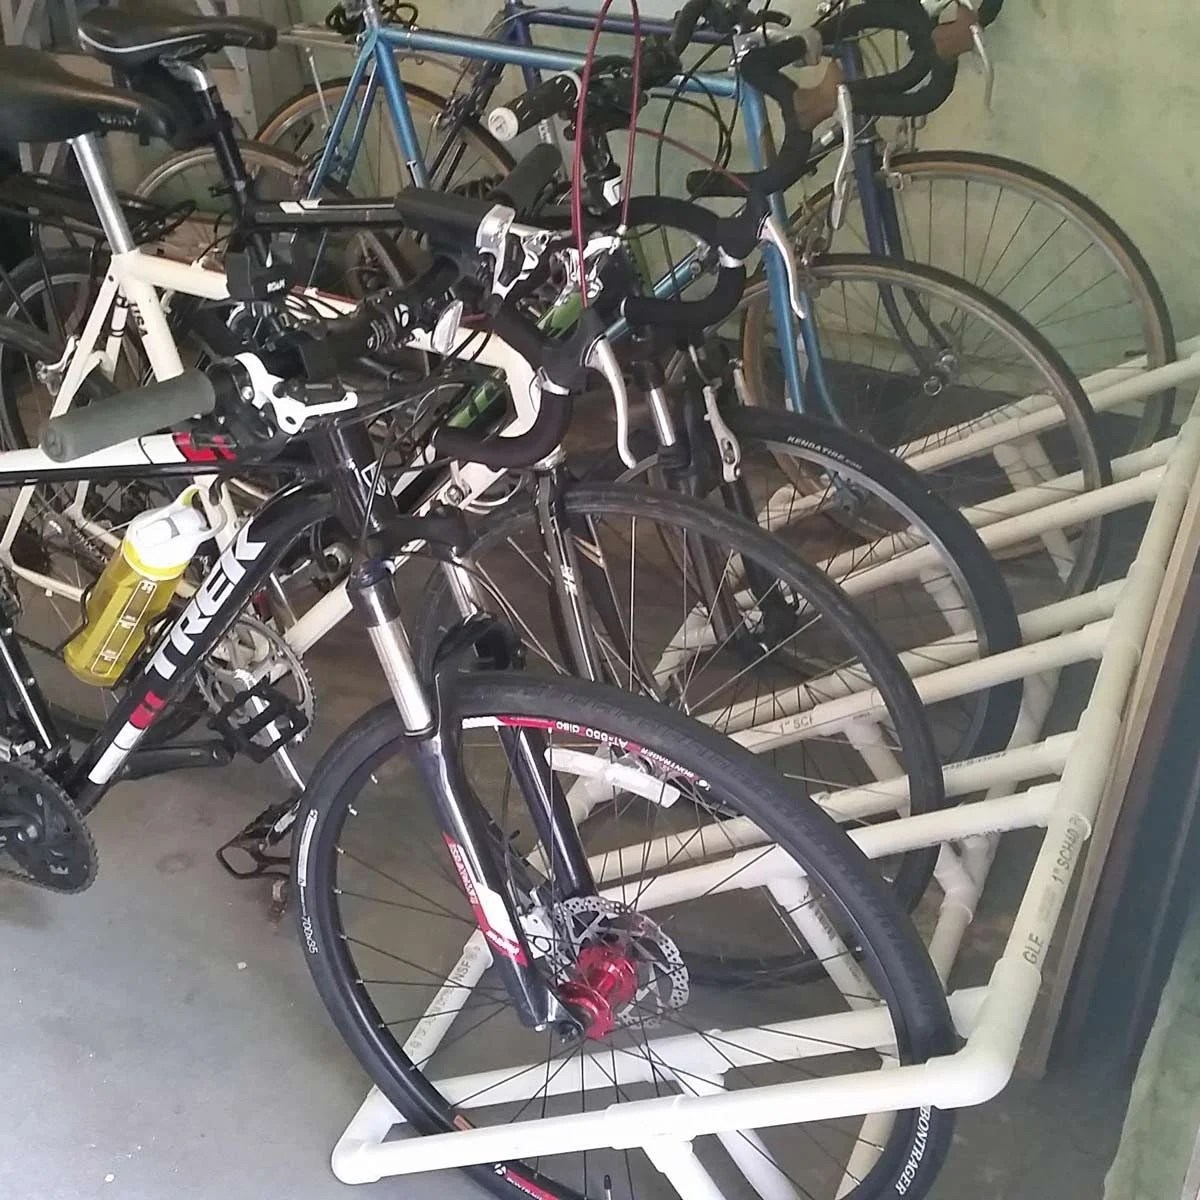 2 Car Garage Bike Storage The 56 Most Brilliant Pvc Hacks You Ve Ever Seen Family Handyman